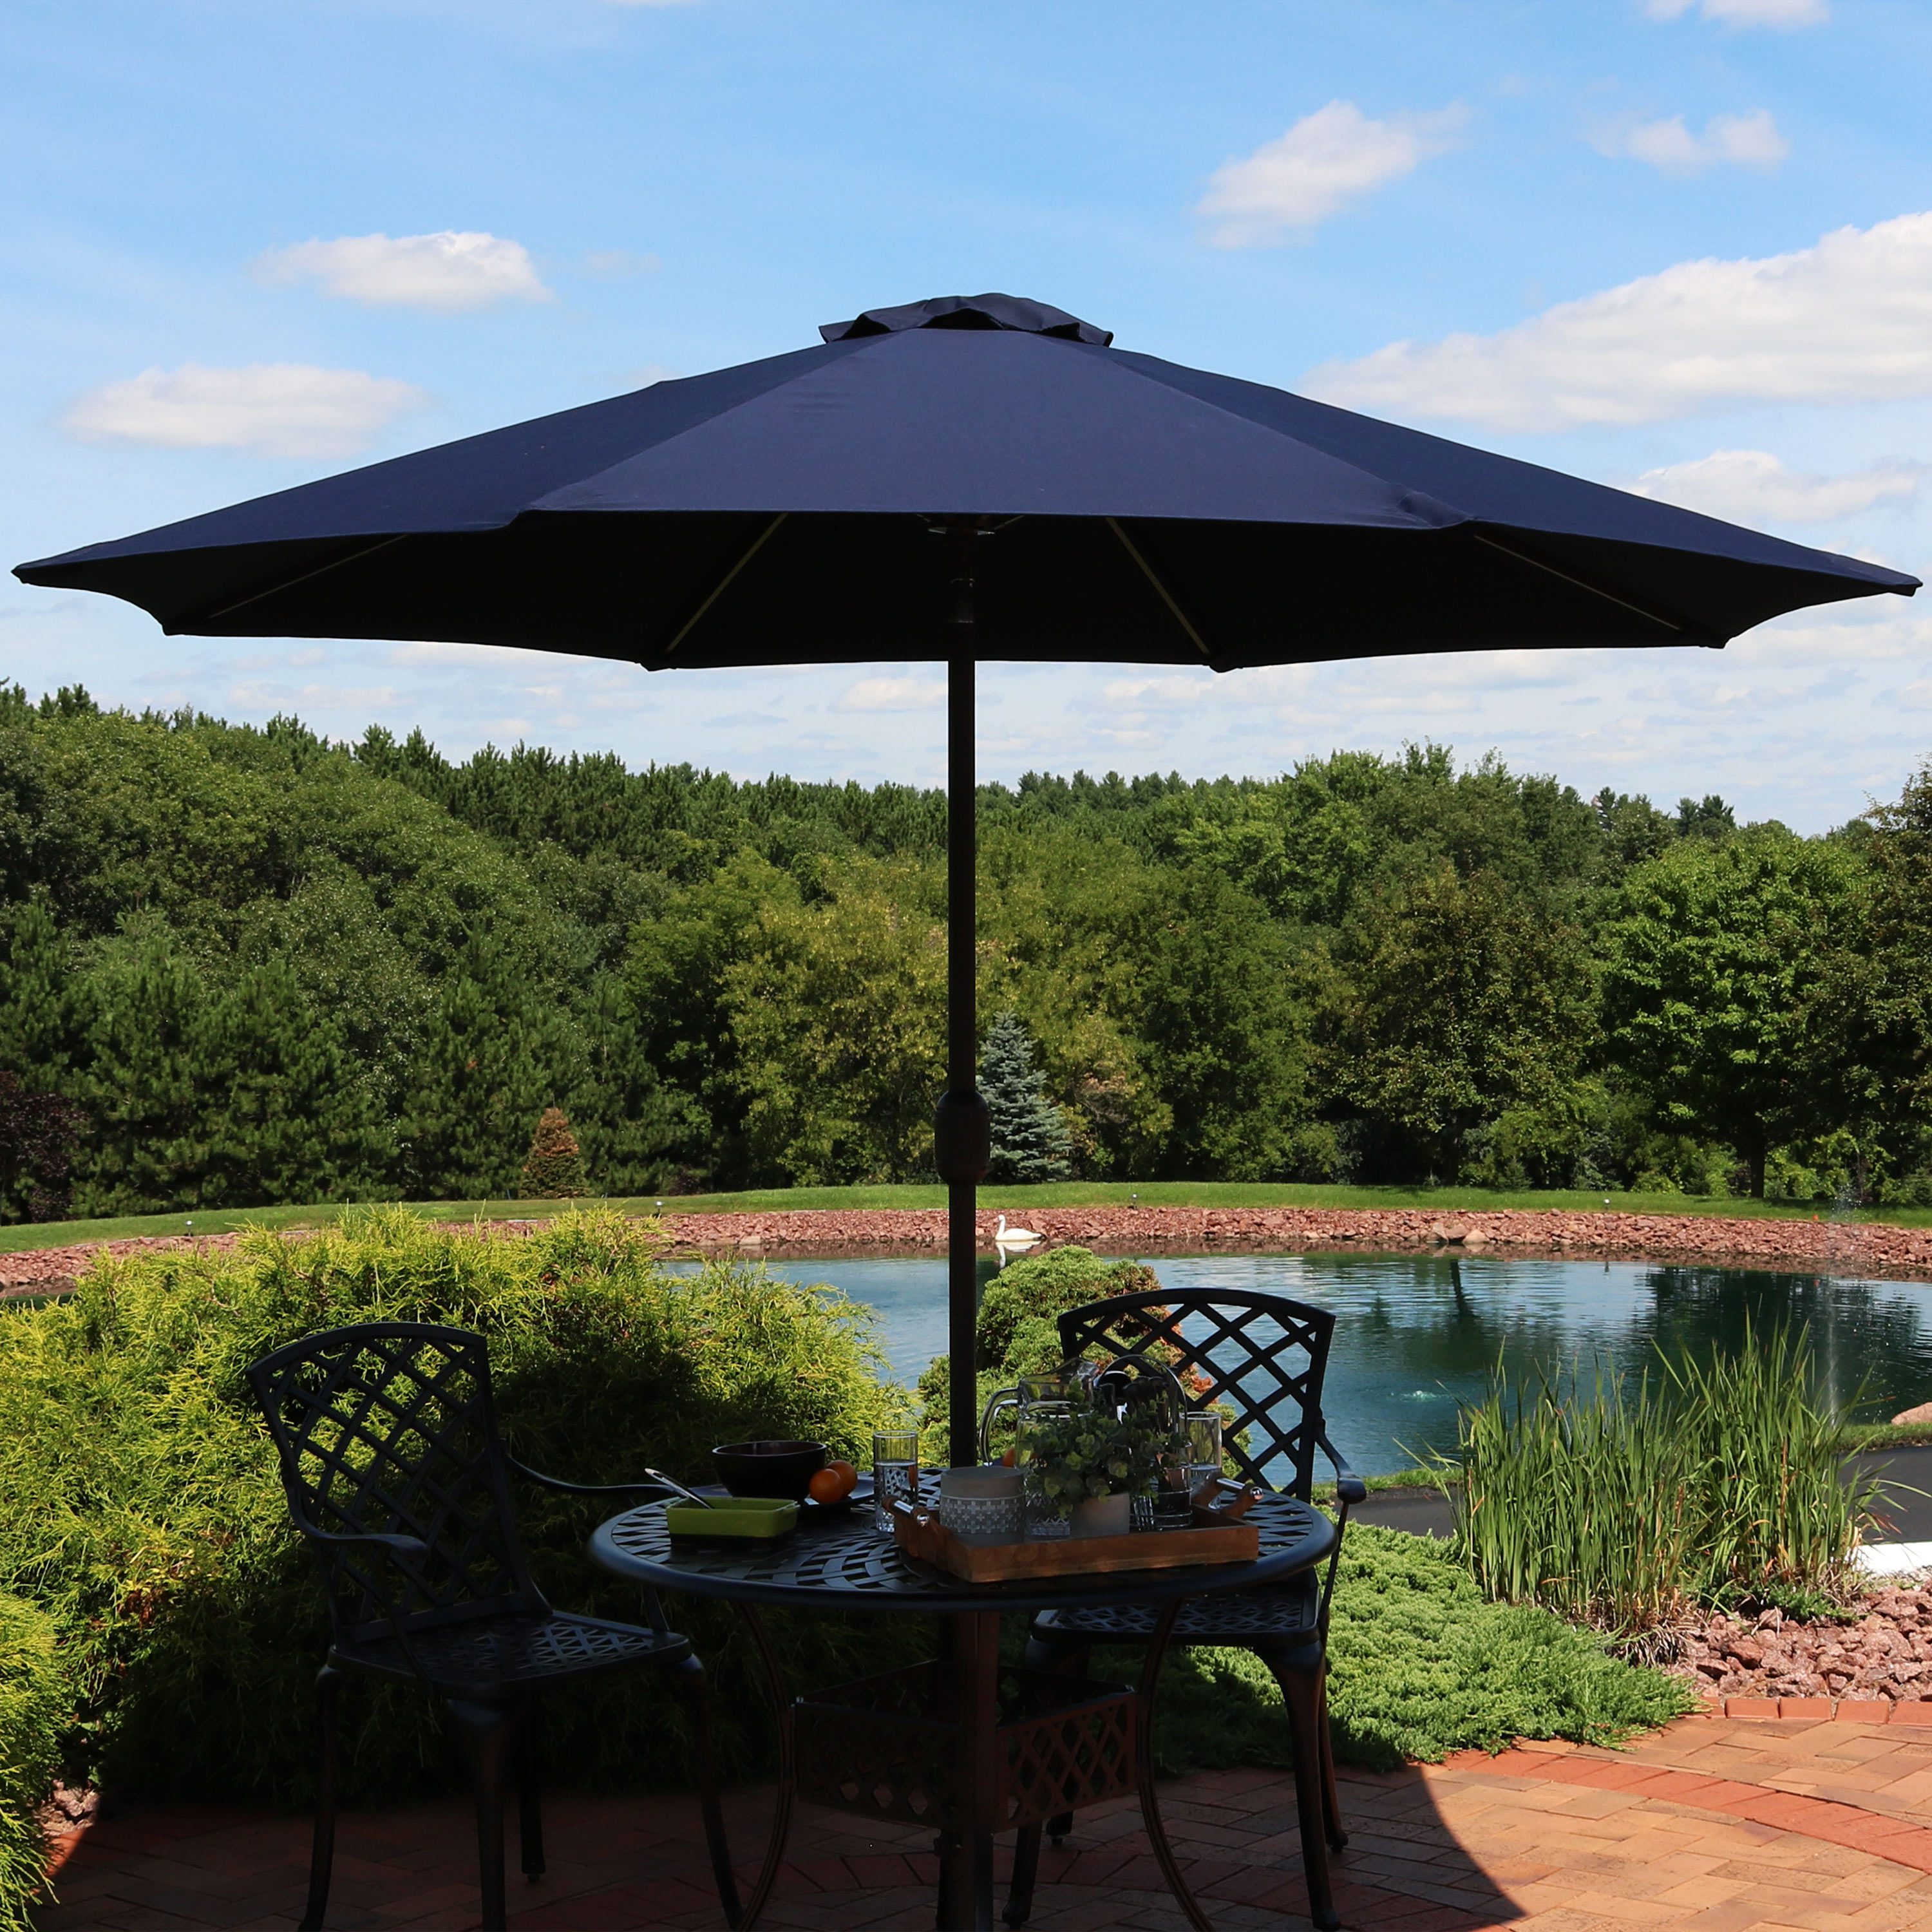 Best And Newest Sunnydaze Sunbrella Patio Umbrella With Auto Tilt And Crank, 9 Foot Outdoor  Market Umbrella, Rust Resistant Aluminum, Sunbrella Beige With Julian Market Sunbrella Umbrellas (View 3 of 20)